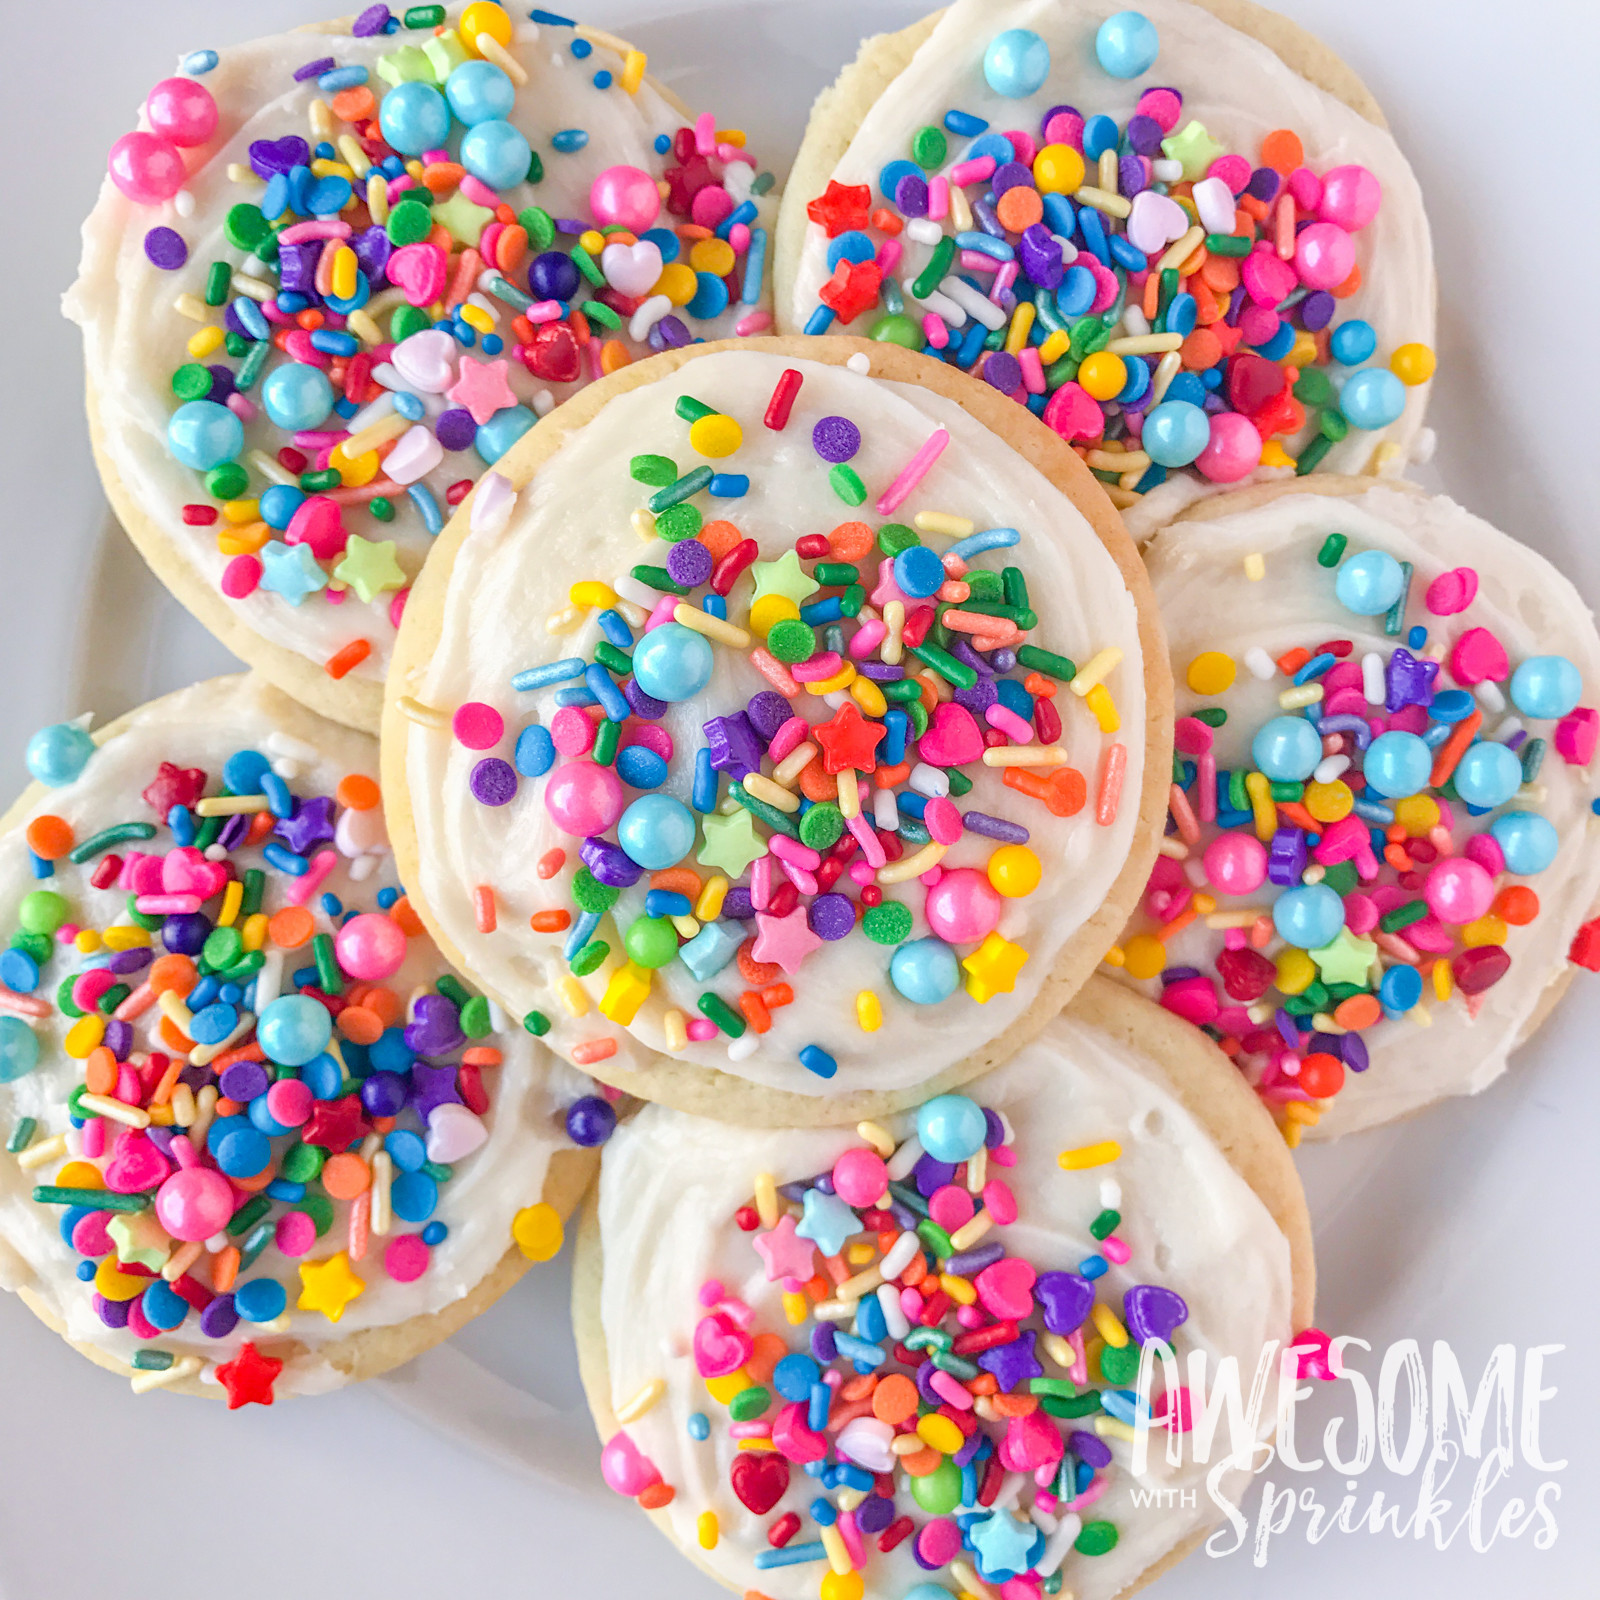 Sugar Cookies With Sprinkles  The Most Awesome Ever Sugar Cookies Awesome with Sprinkles